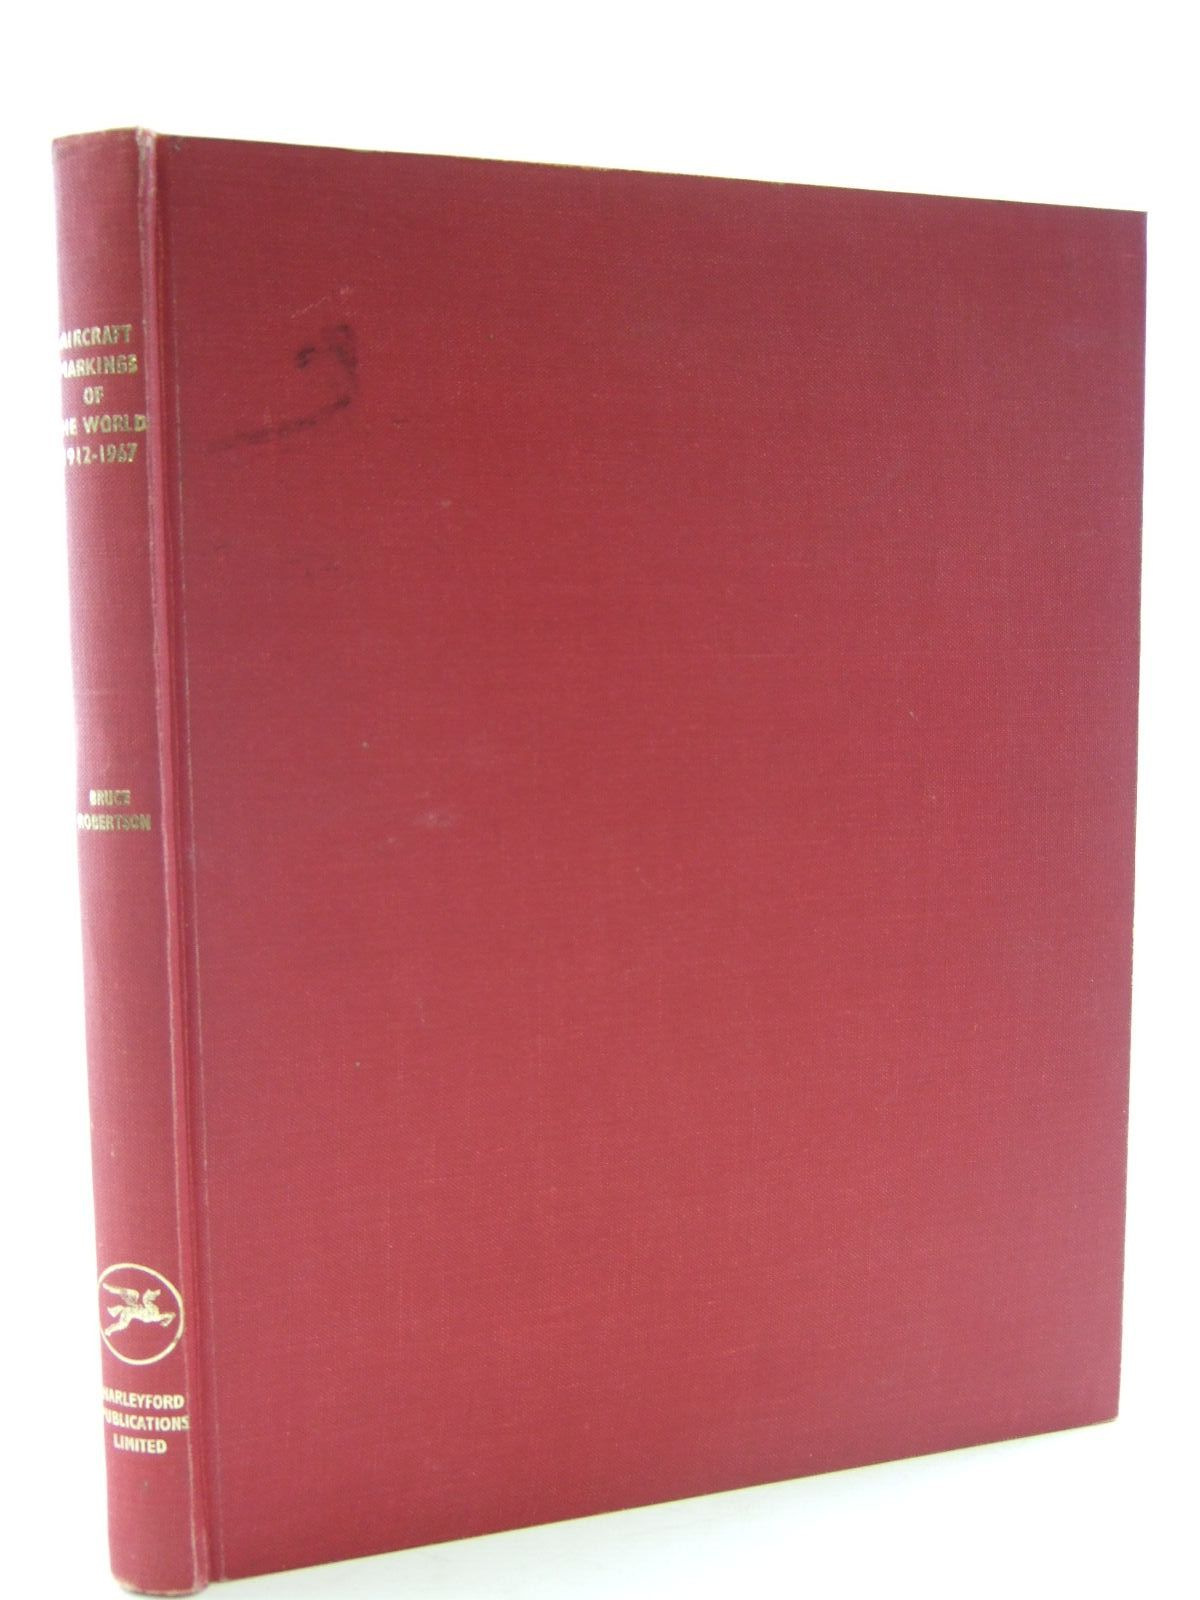 Photo of AIRCRAFT MARKINGS OF THE WORLD 1912-1967 written by Robertson, Bruce illustrated by Hepworth, W.F.<br />Stroud, John<br />Carrick, J.D. published by Harleyford Publications Limited (STOCK CODE: 2109020)  for sale by Stella & Rose's Books